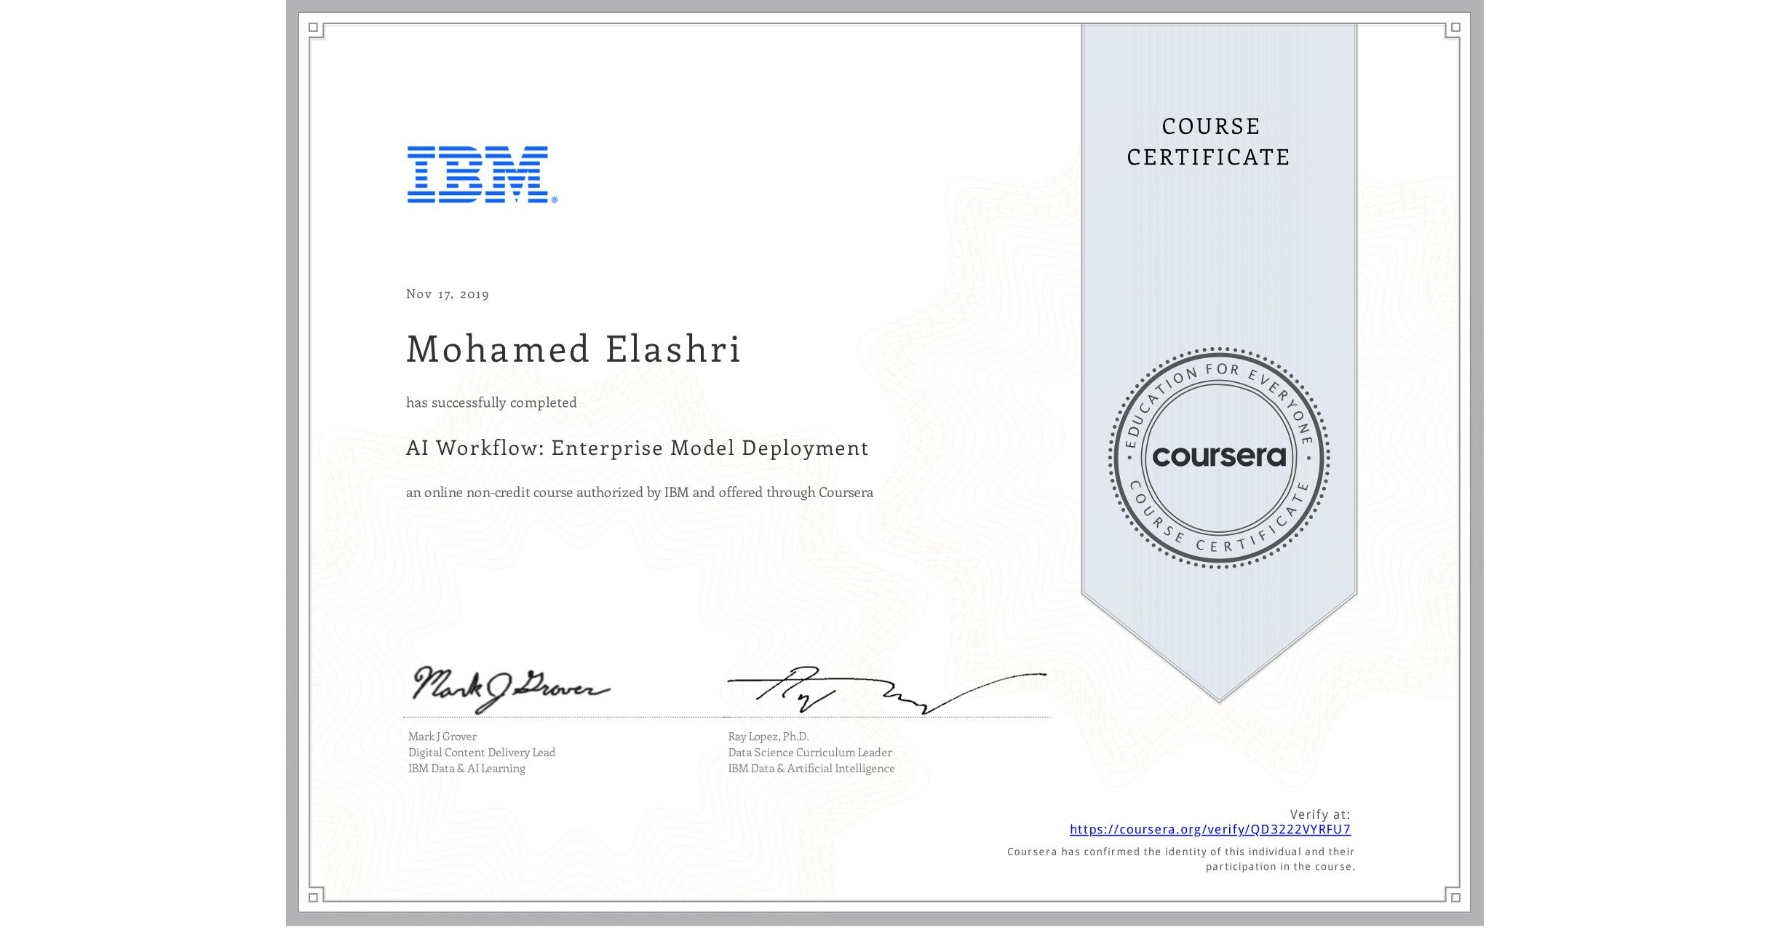 View certificate for Mohamed Elashri, AI Workflow: Enterprise Model Deployment, an online non-credit course authorized by IBM and offered through Coursera